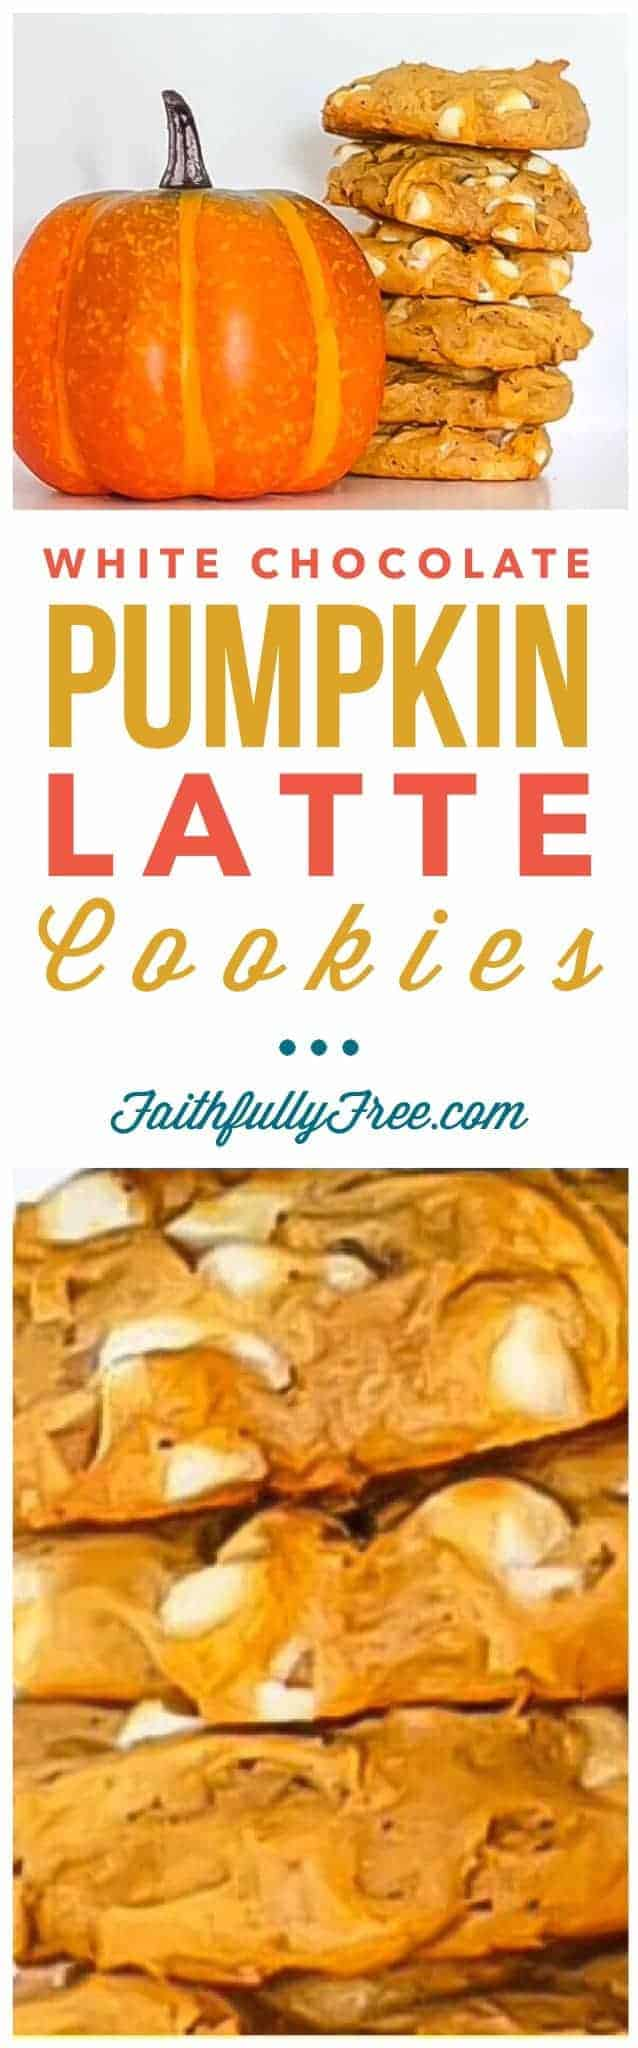 White Chocolate Pumpkin Latte Cookies Recipe